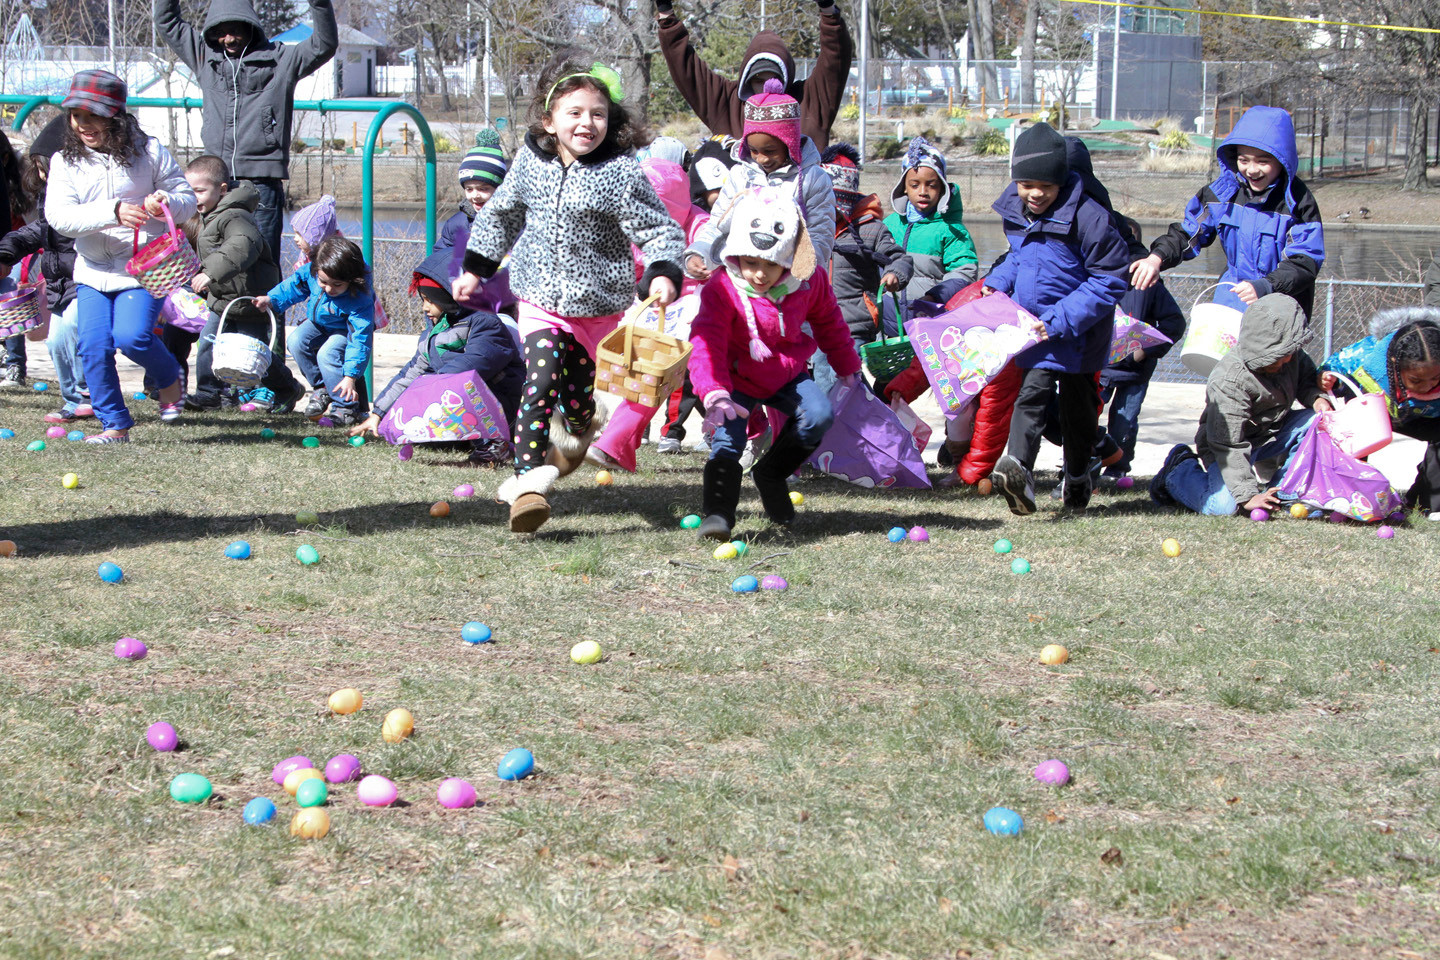 There were Eggs as far as the eye could see, until children scooped them all up, at Hendrickson Park last Saturday for the village's annual Easter egg hunt hosted by the Recreation Department.